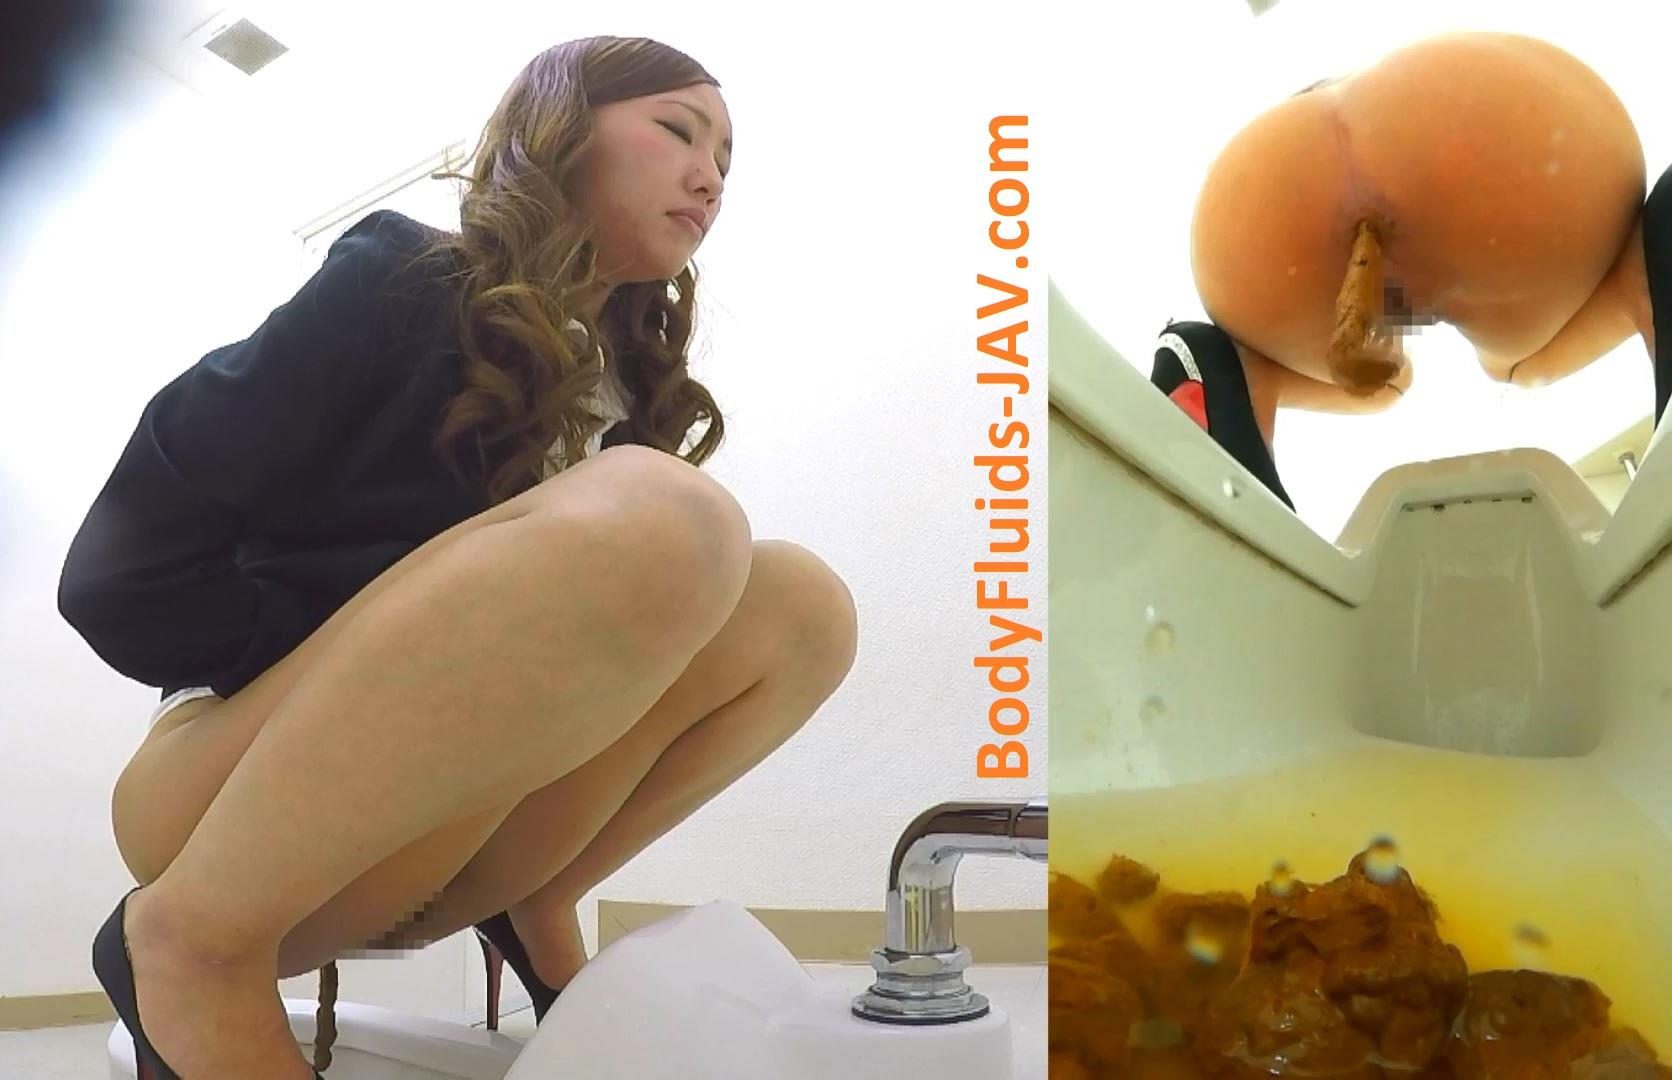 BFEE-49 Incredible girl pisses and defecates in a public toilet. (HD 1080p)